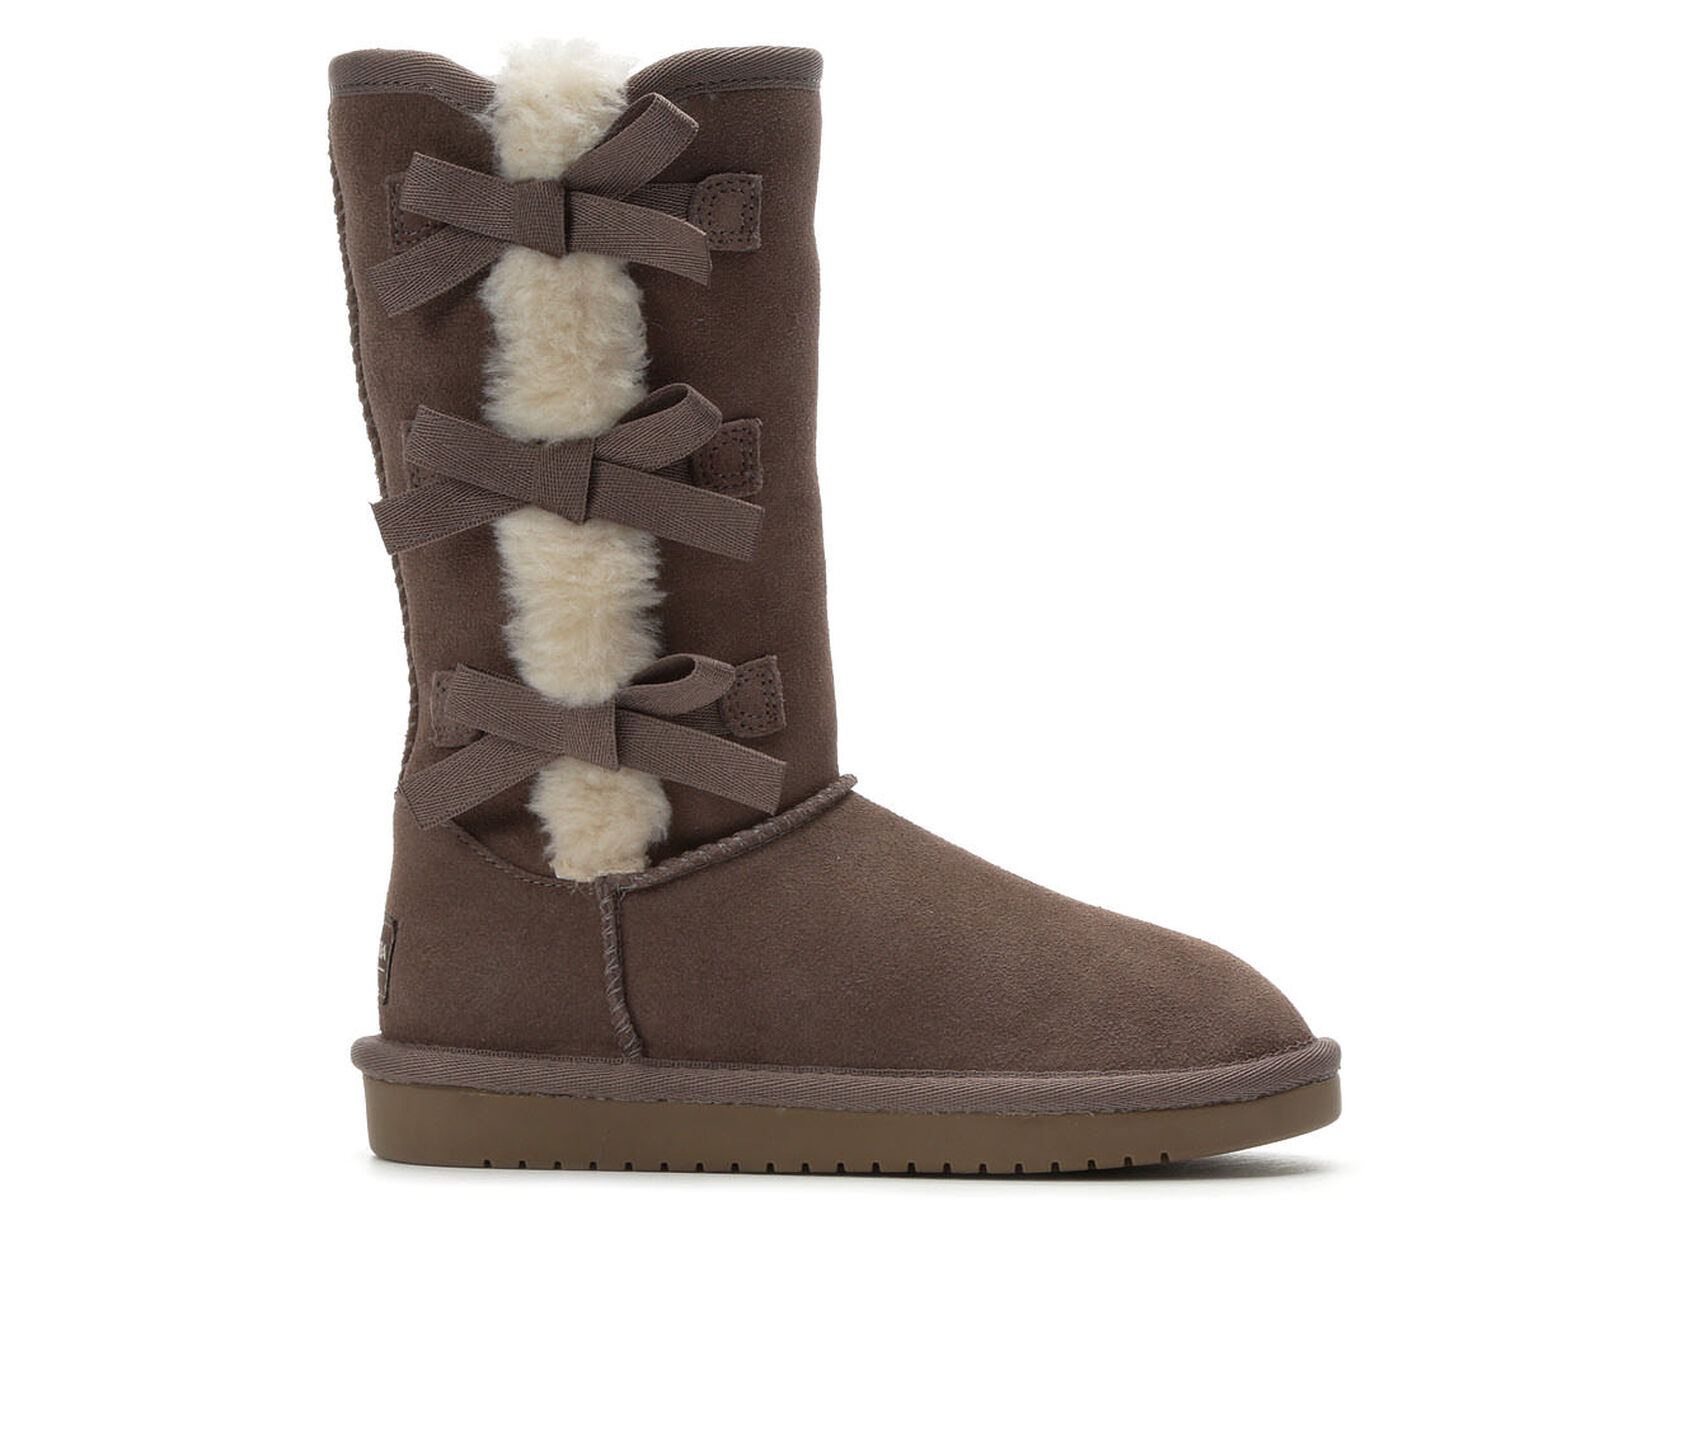 59f2fa894652 ... Koolaburra by UGG Little Kid  amp  Big Kid Victoria Tall Boots. Previous